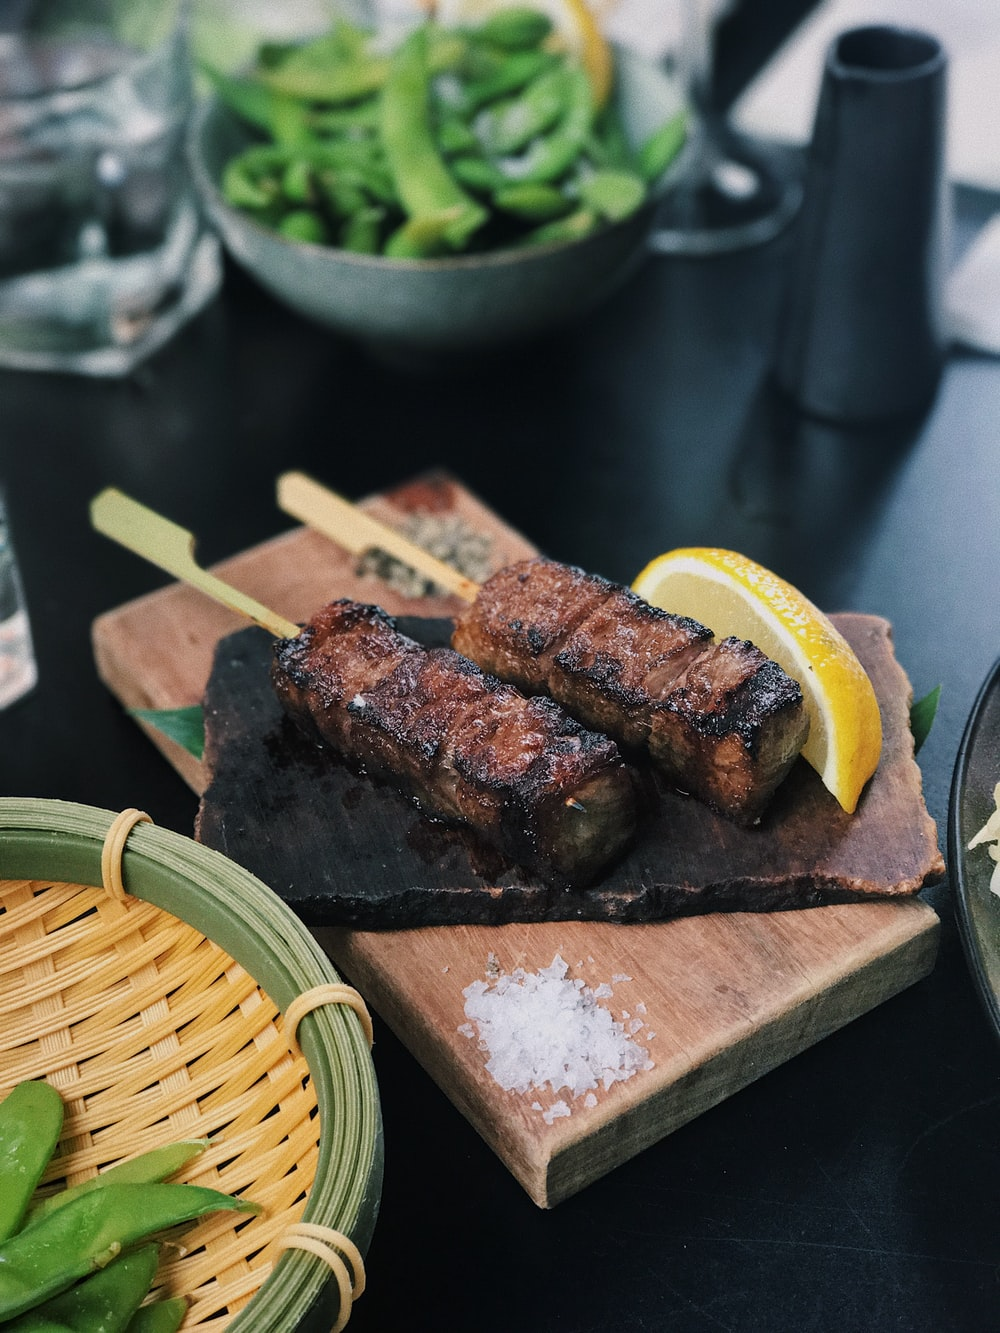 grilled steak on chopping board